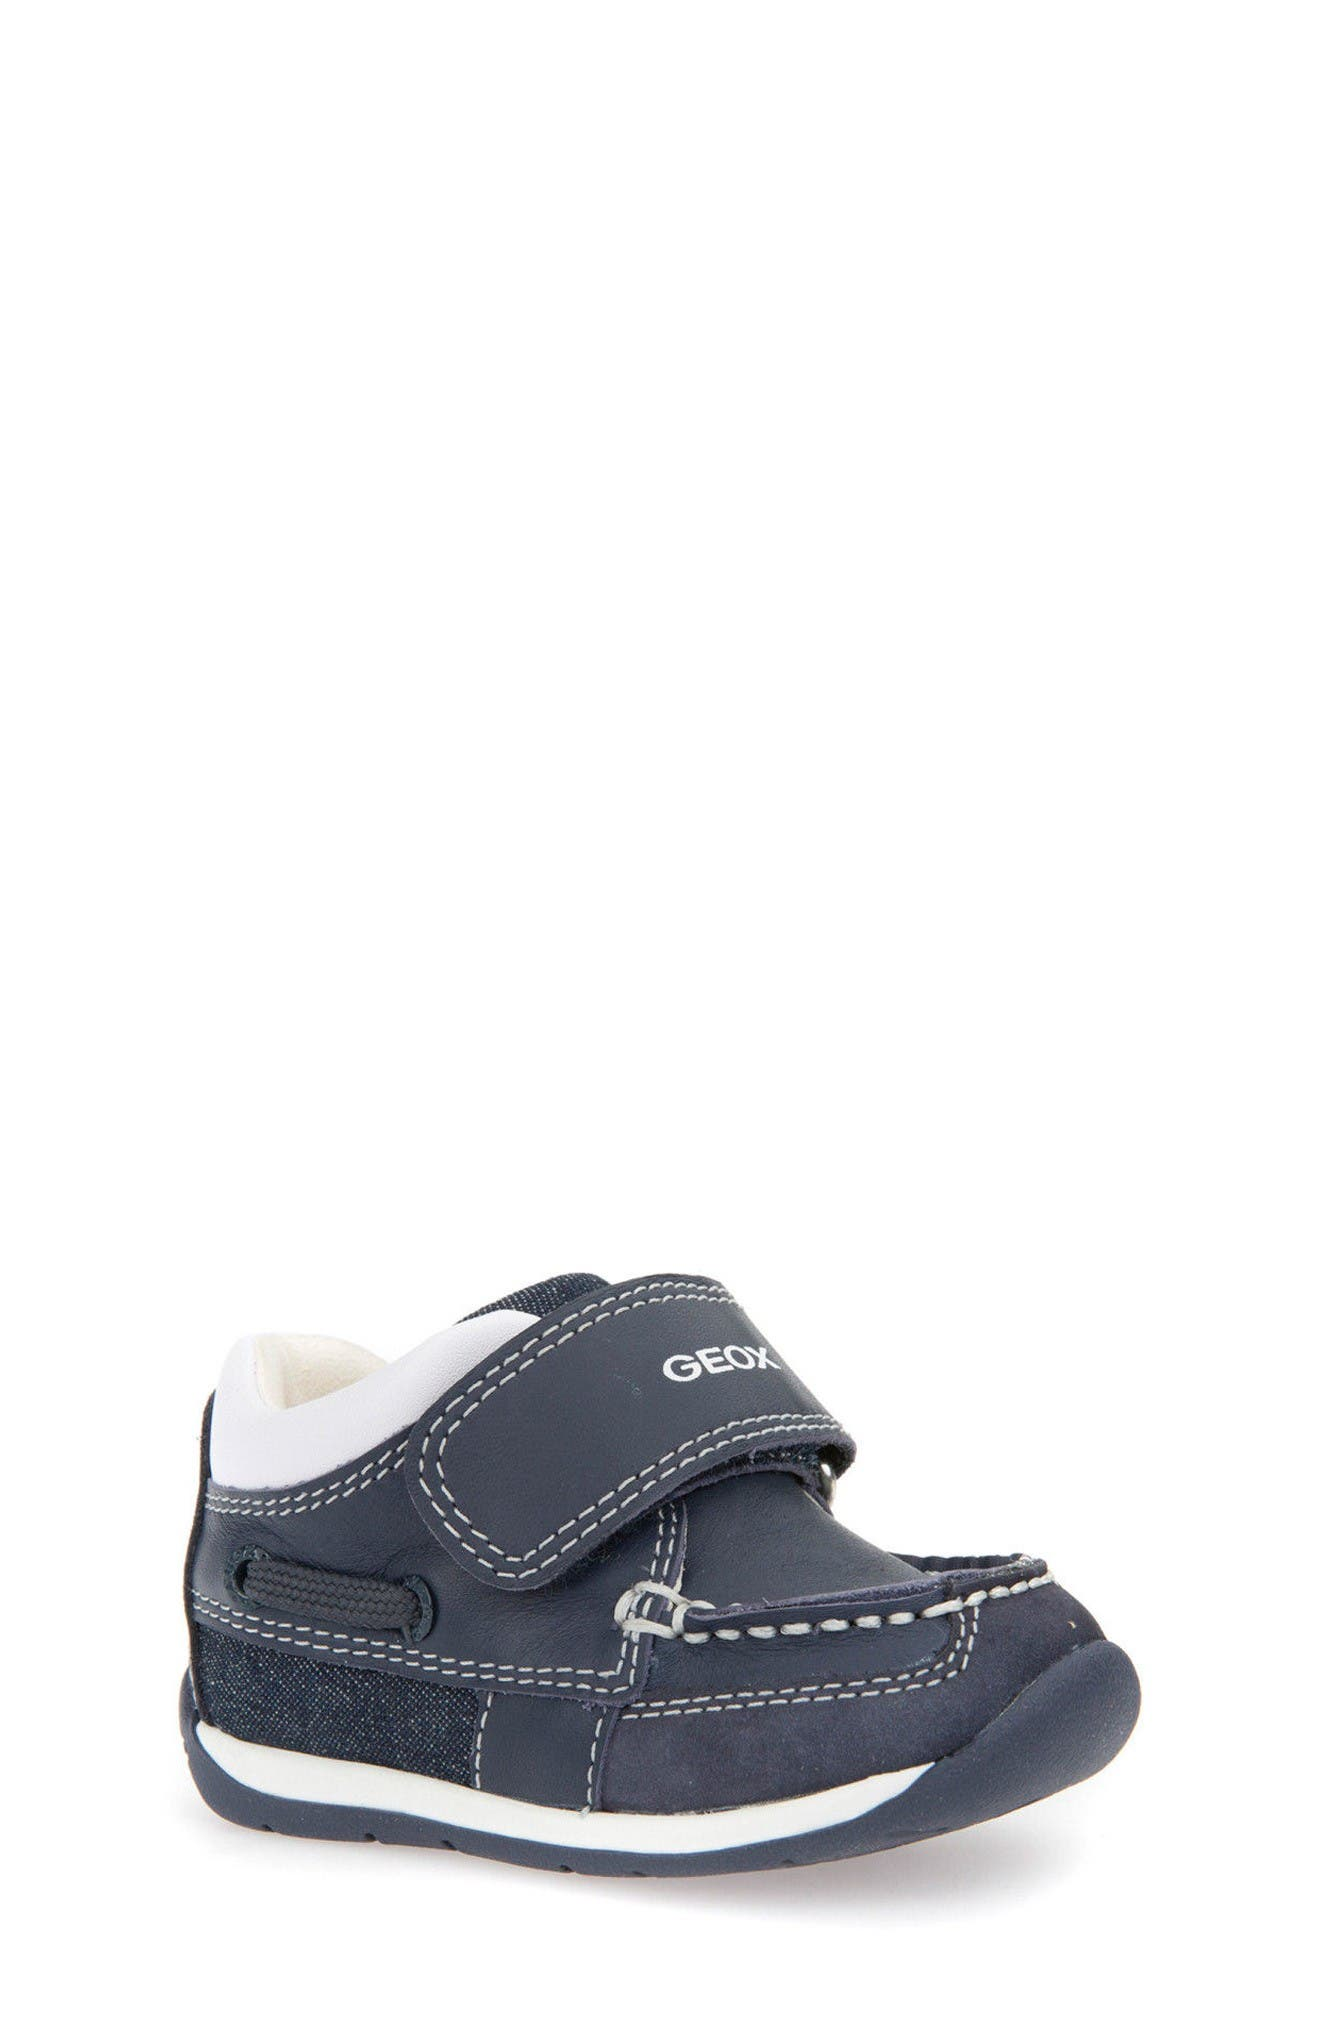 Geox Beach Sneaker (Baby, Walker & Toddler)